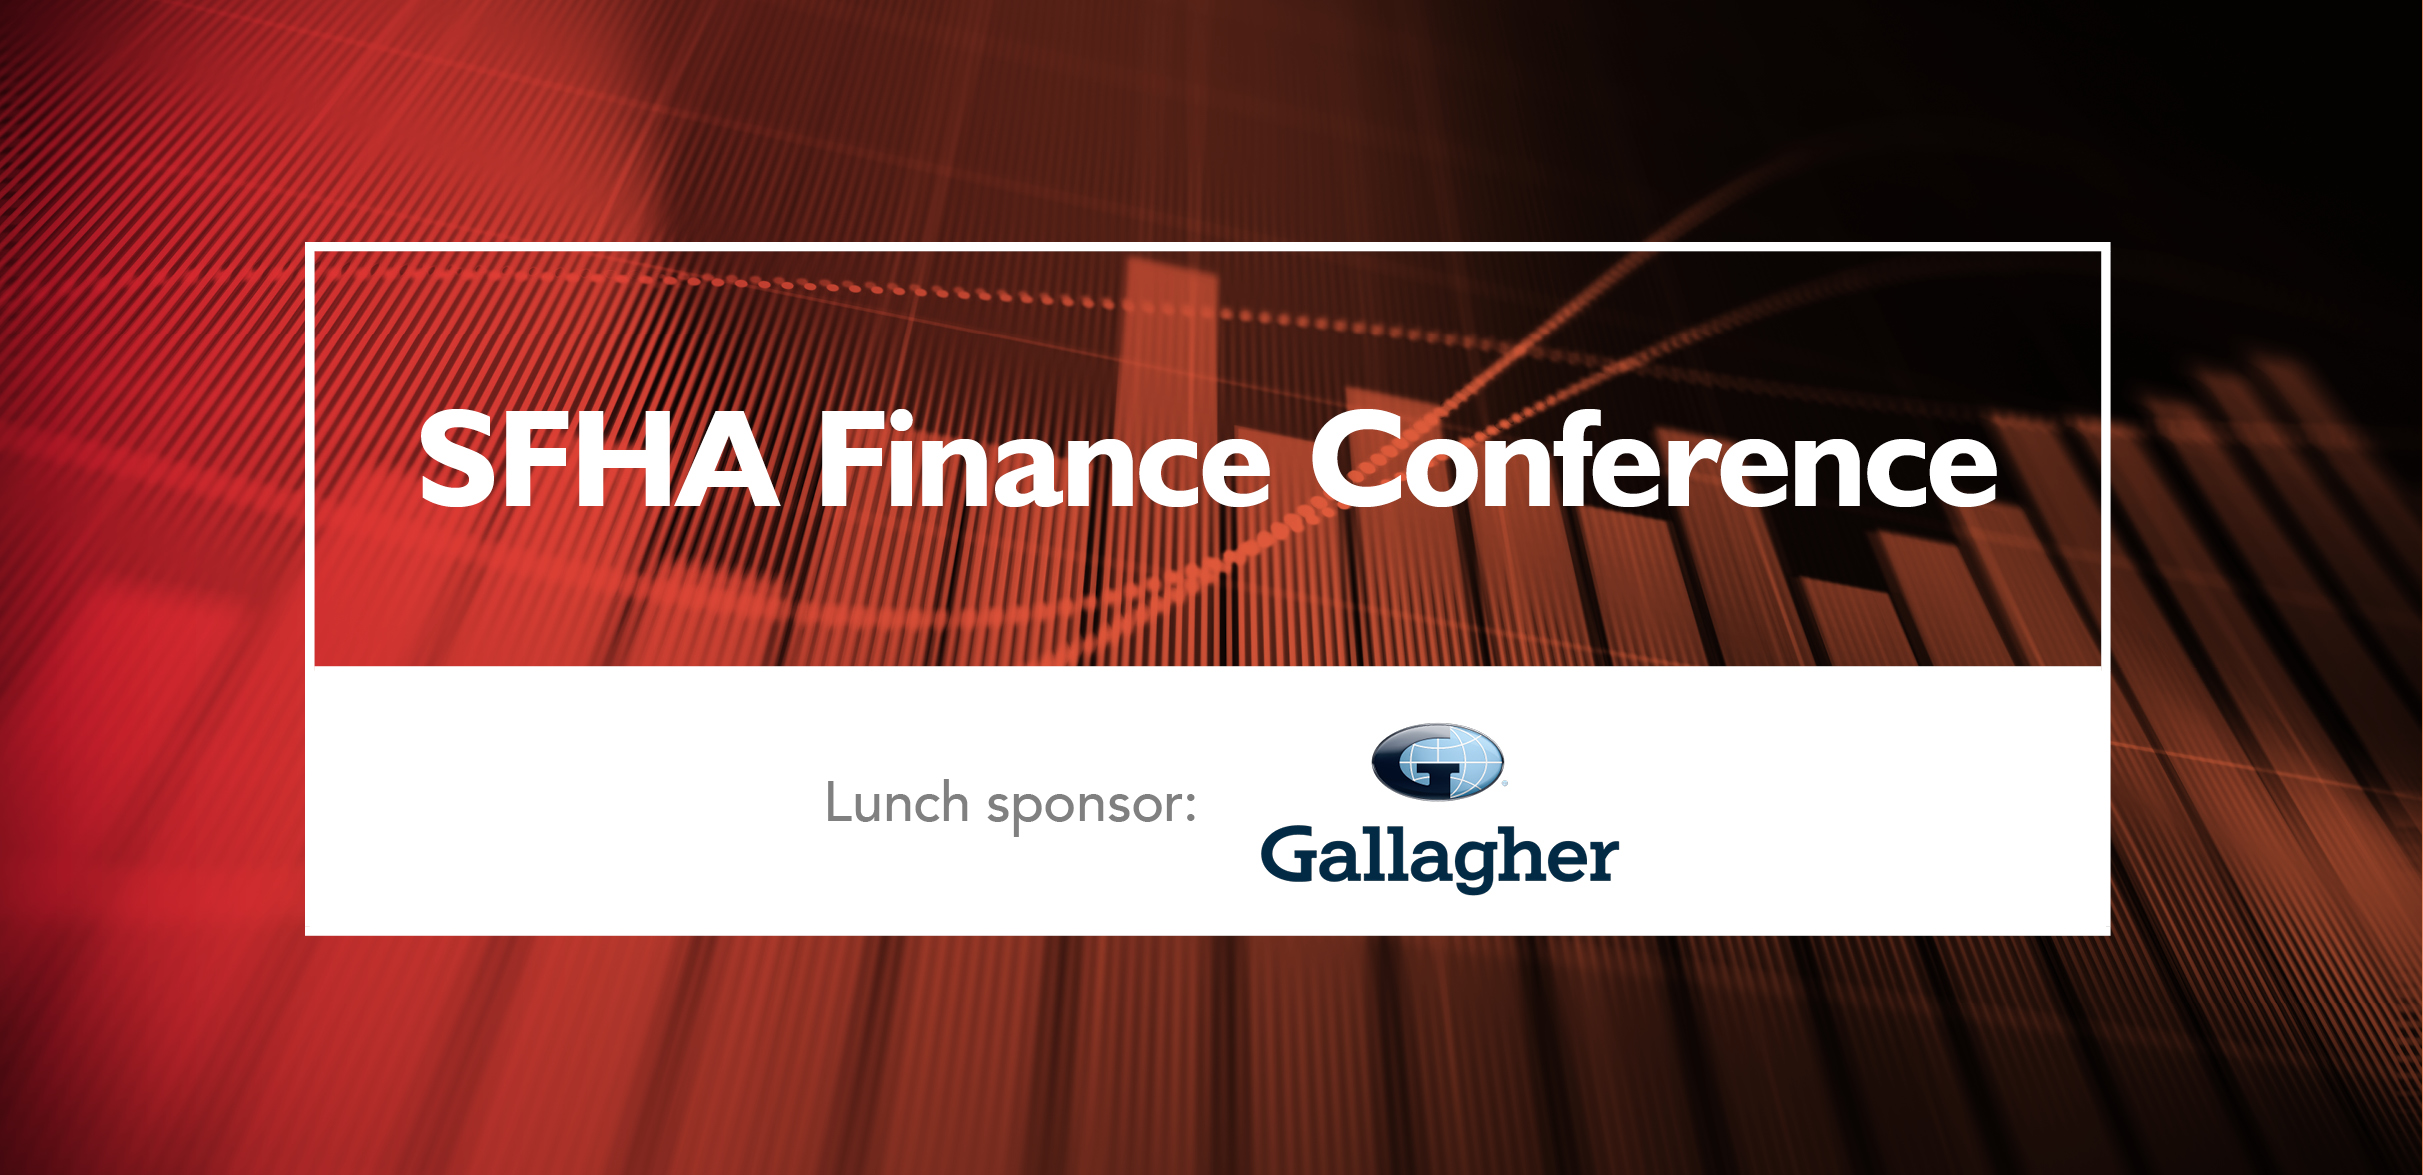 SFHA Finance Conference sponsor: Gallagher image